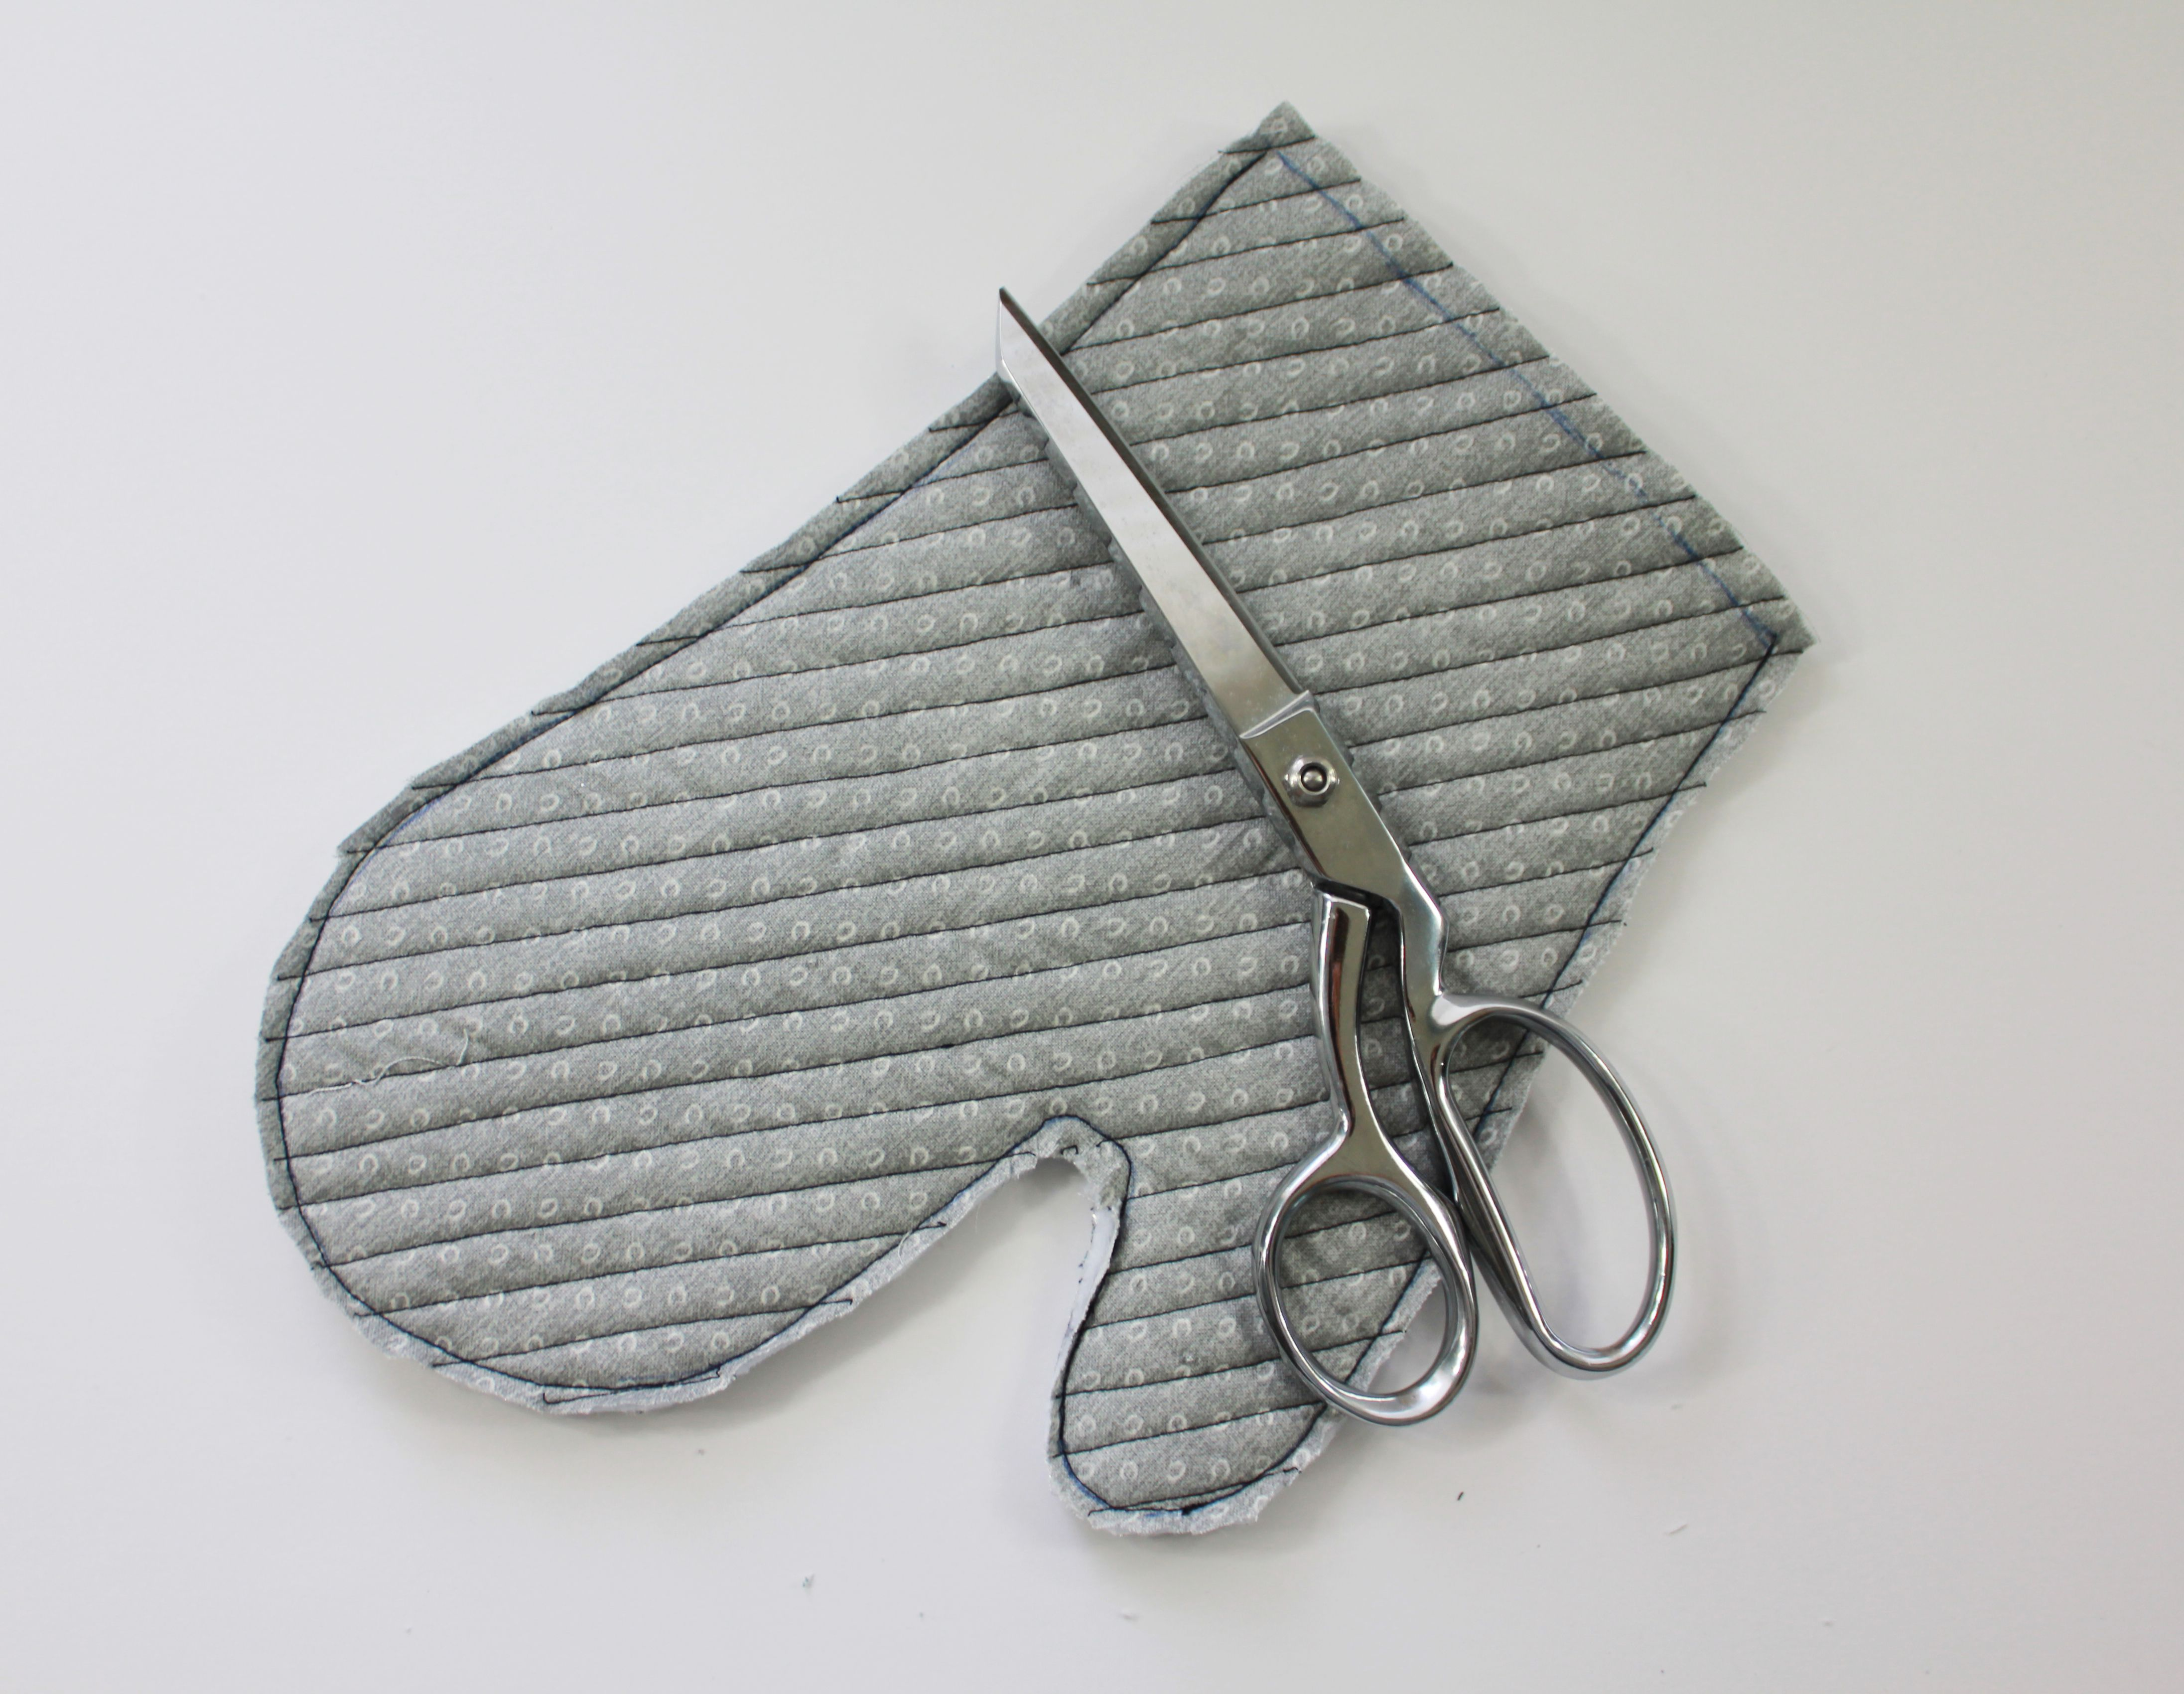 An oven mitt and a pair of scissors